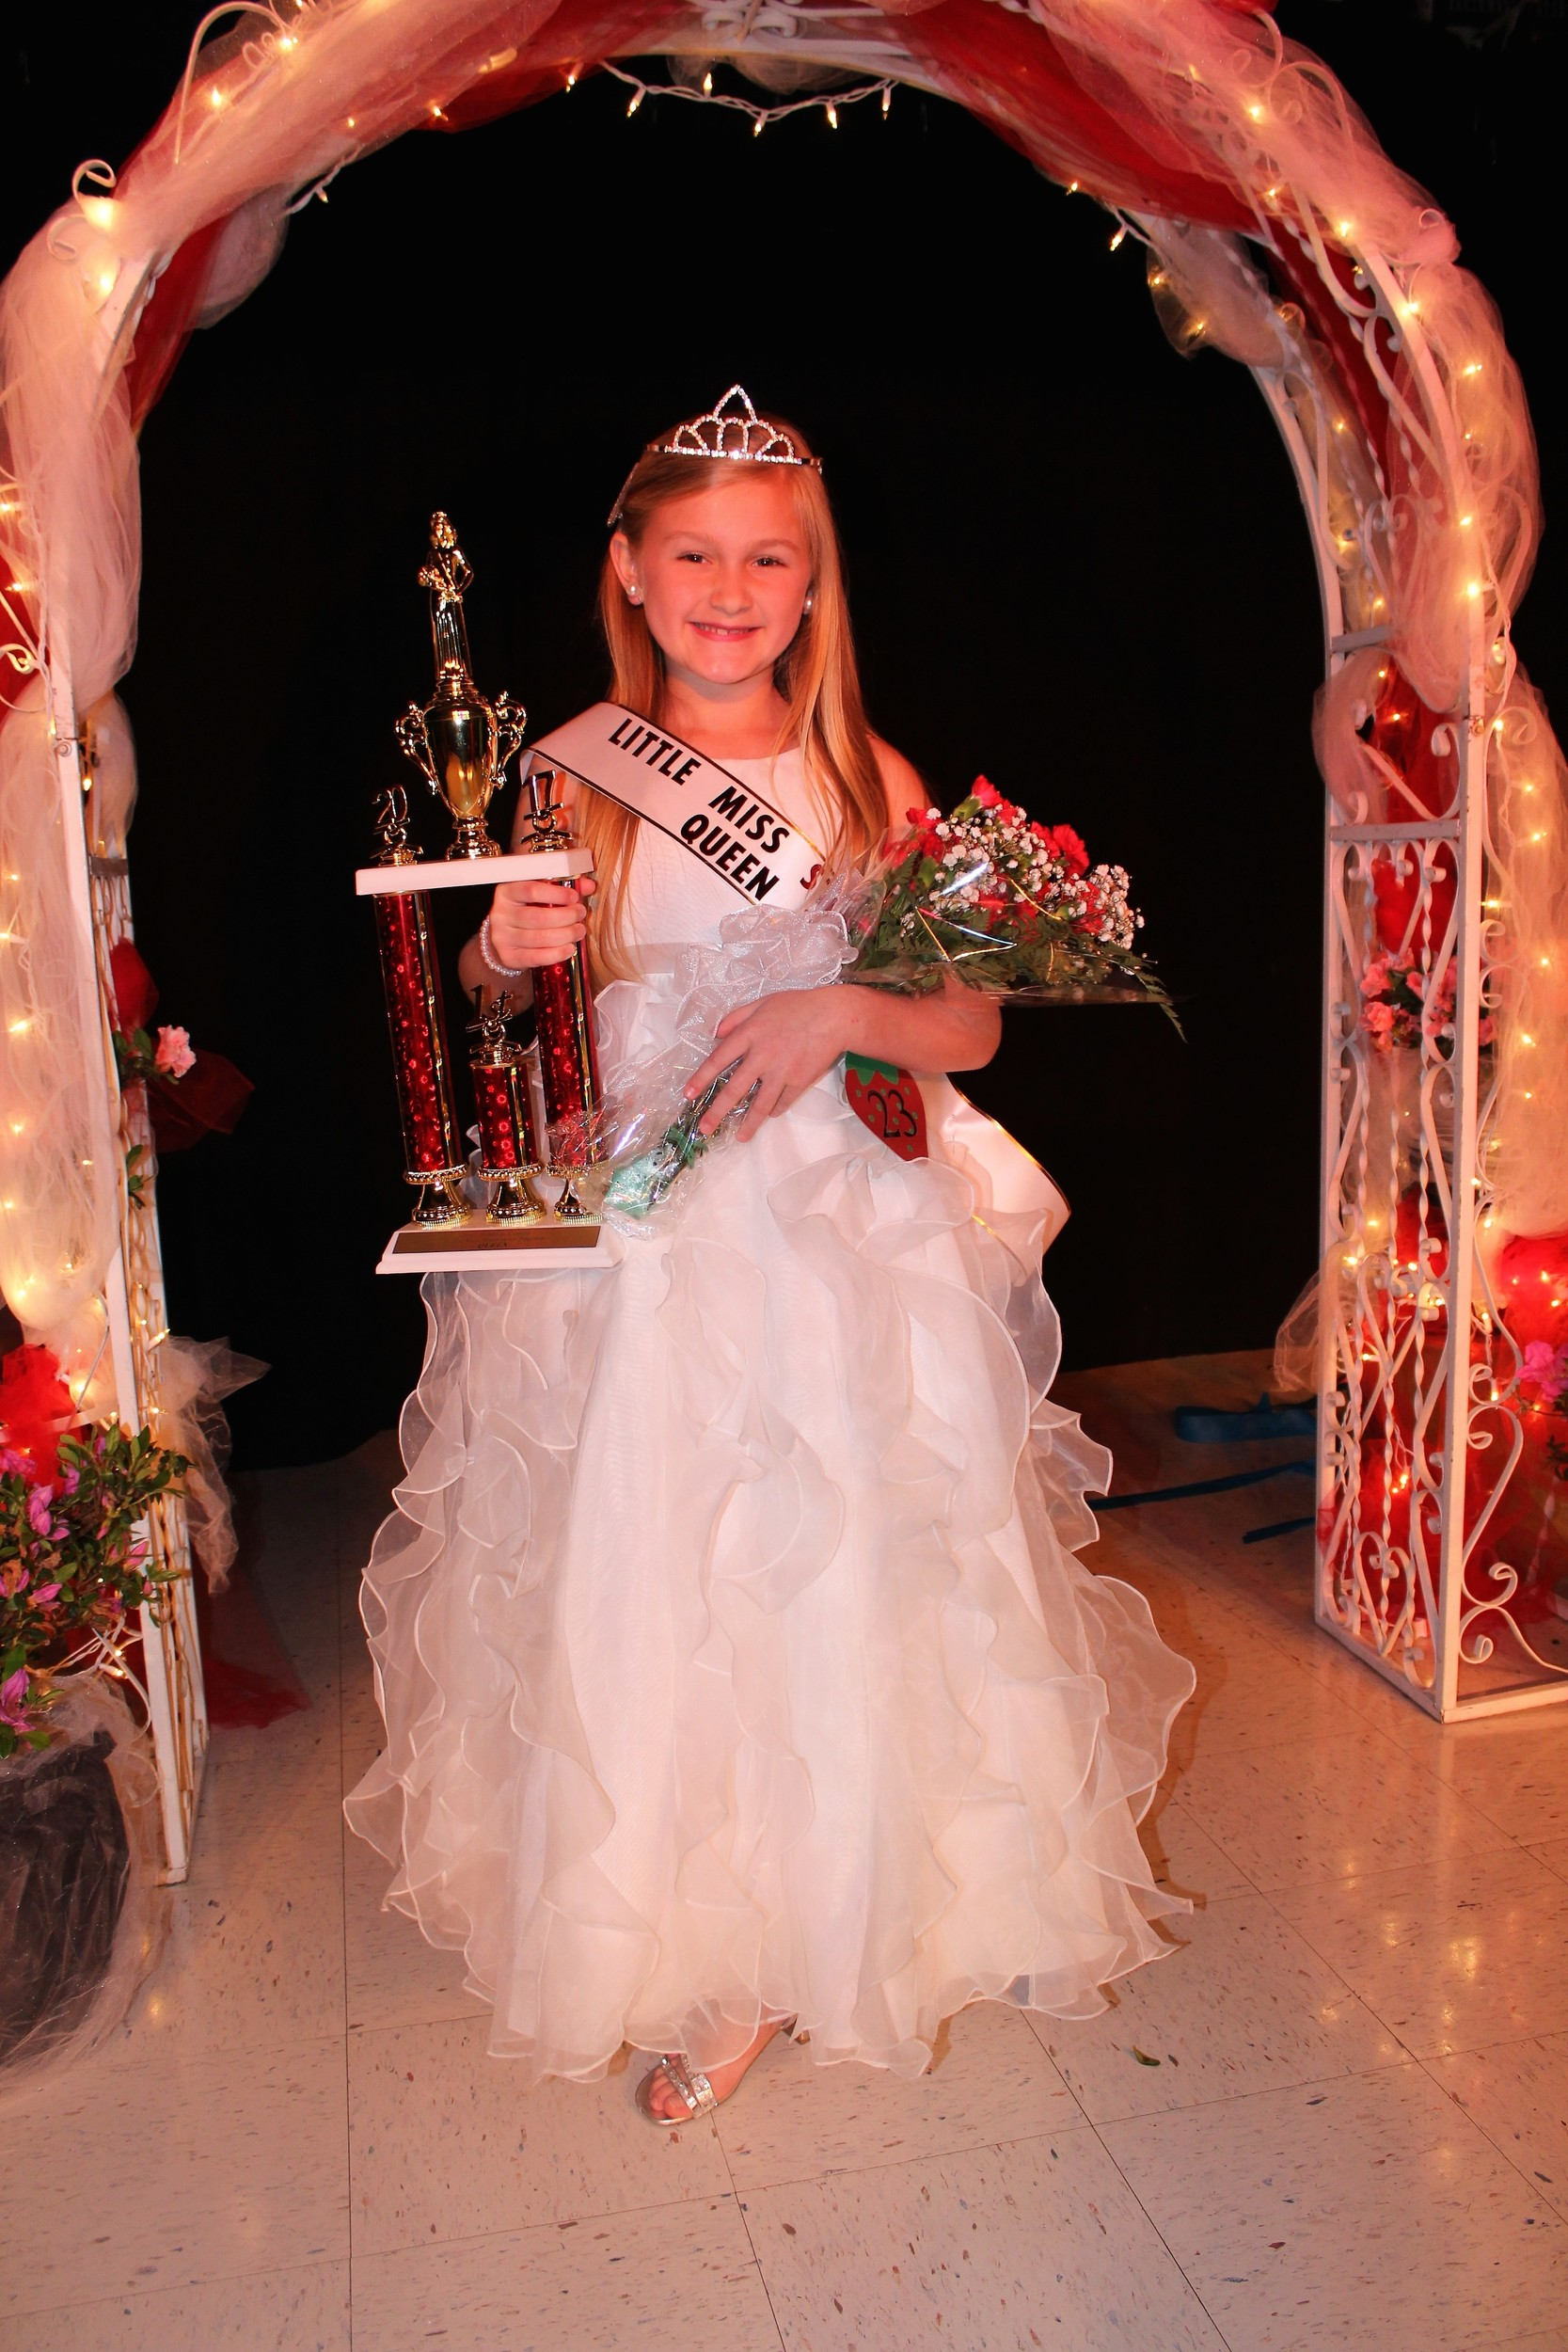 2017 Little Miss Strawberry Queen Addison Elizabeth Kucera of Silverhill.